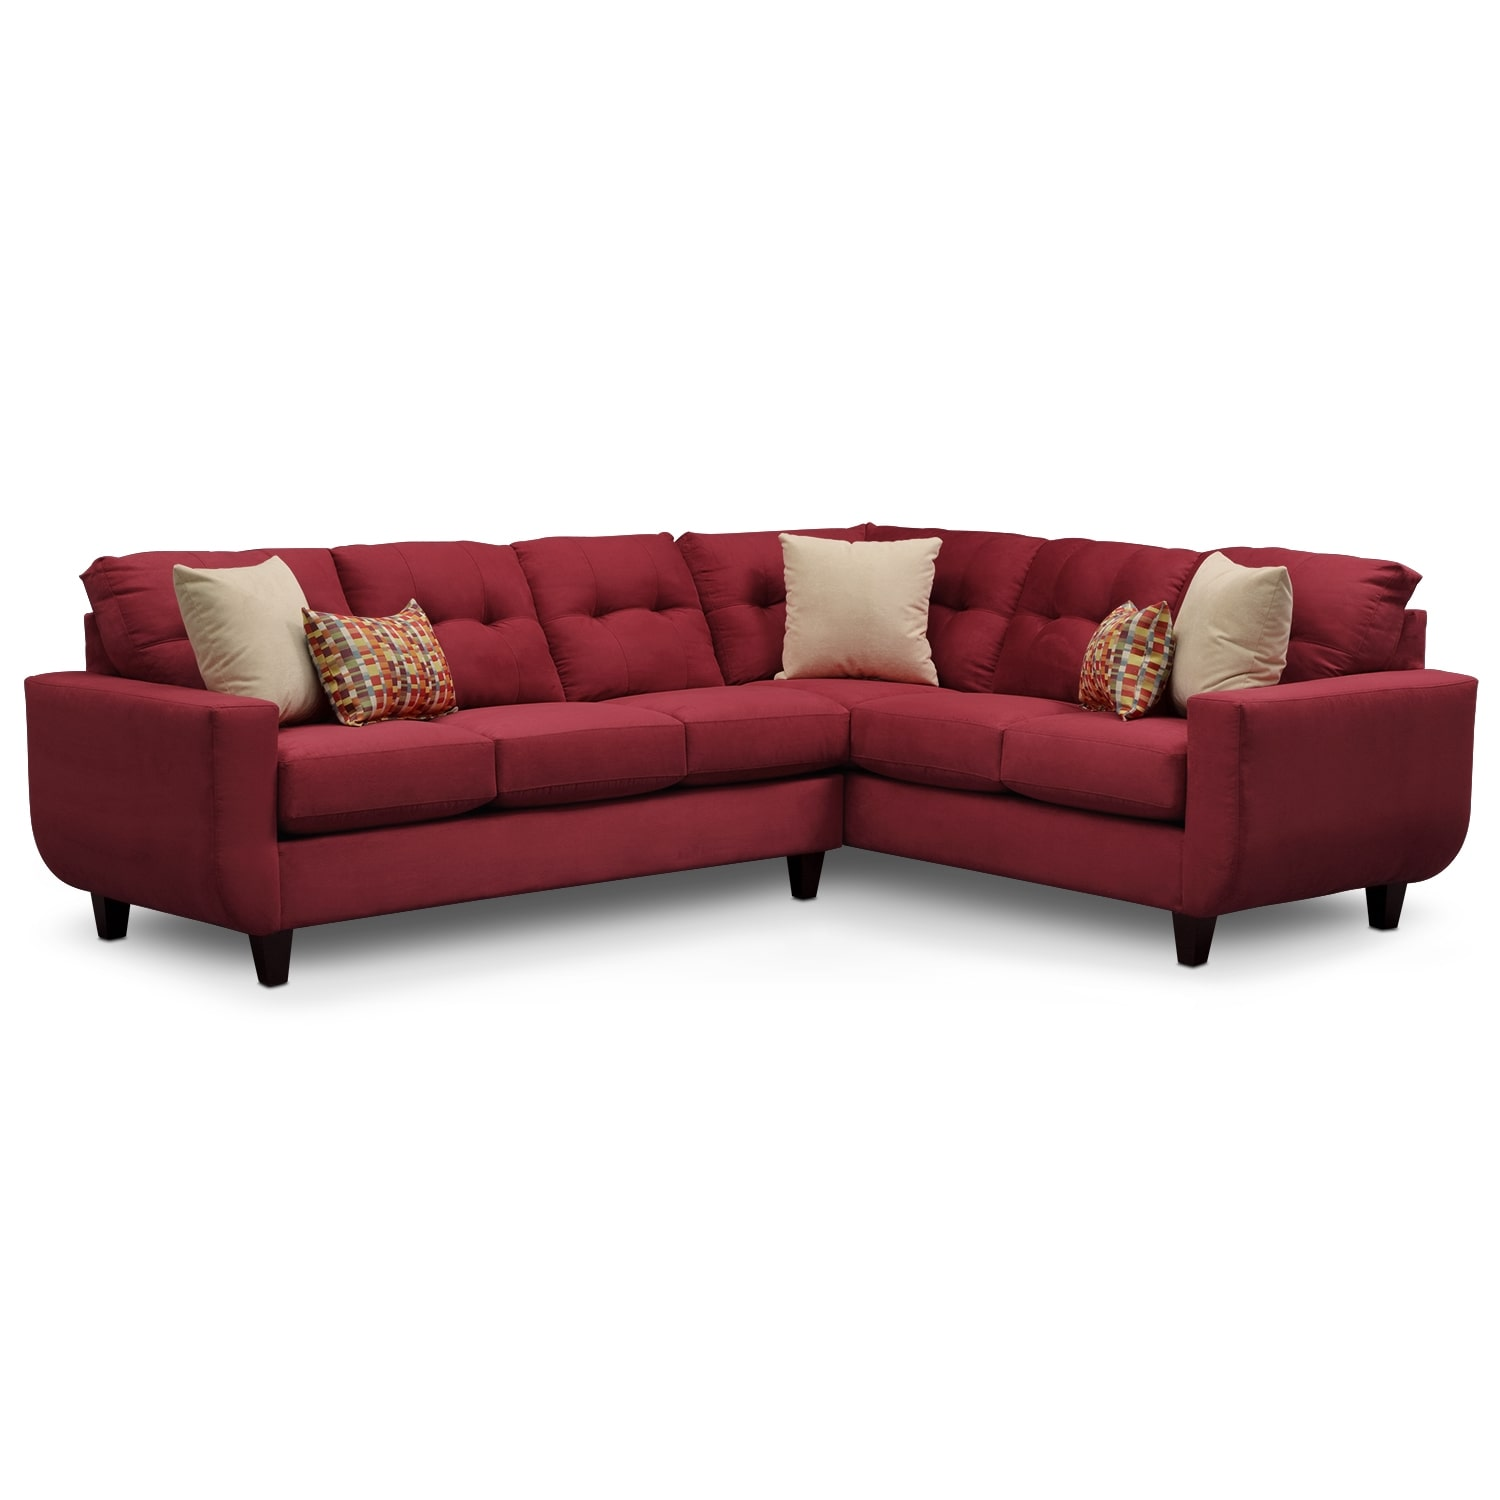 West Village Red II 2 Pc. Sectional